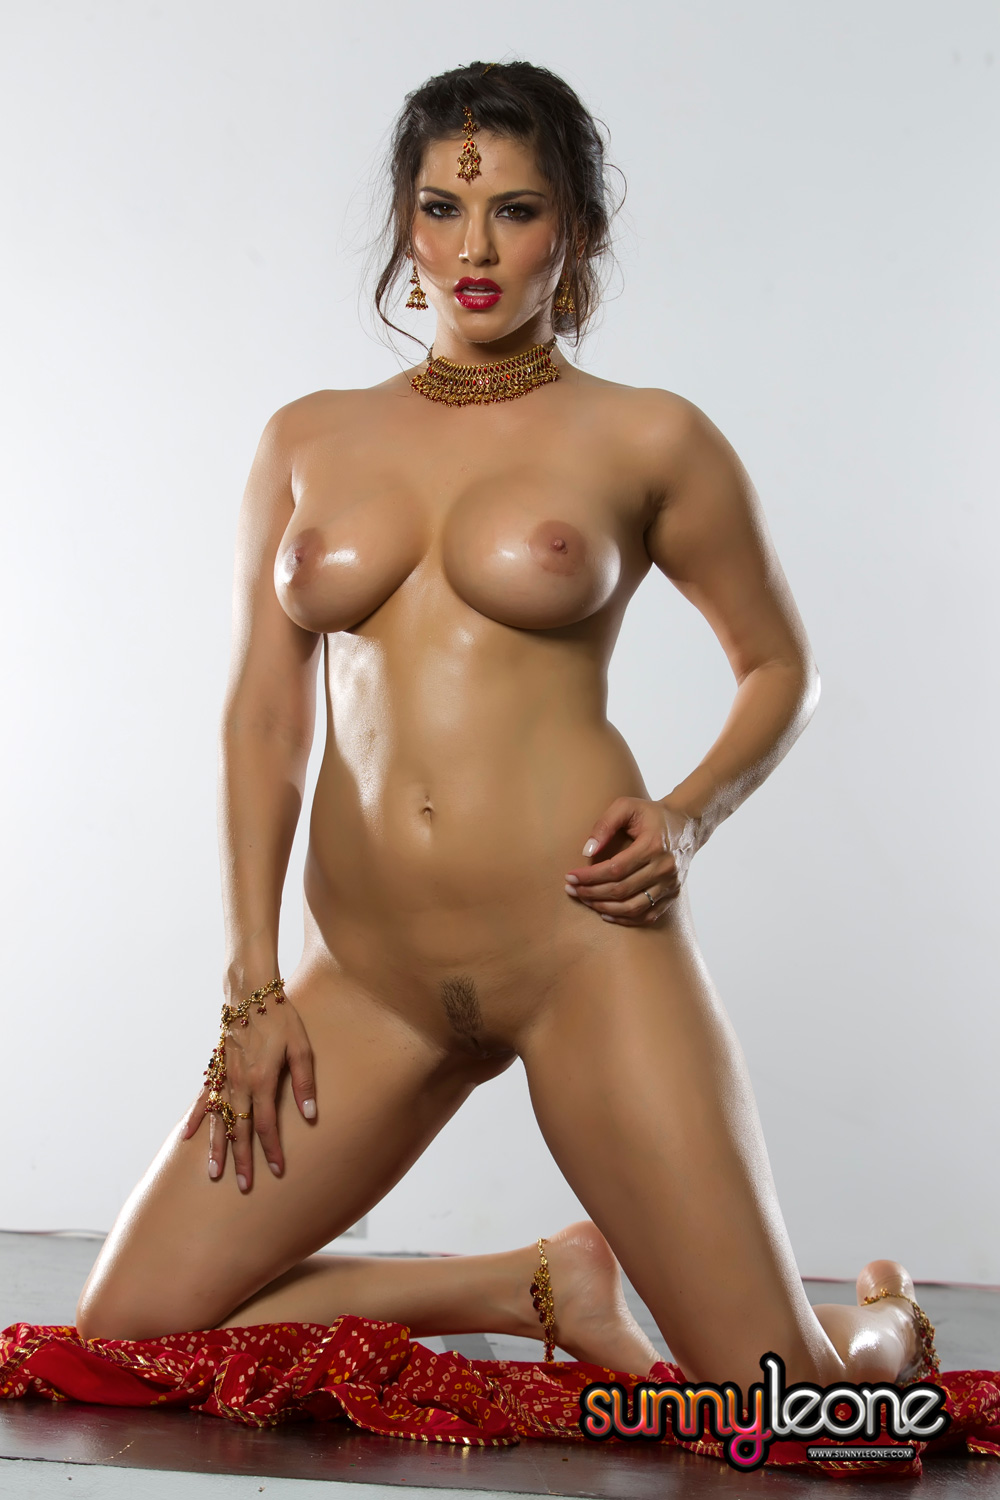 sunny leones nude images